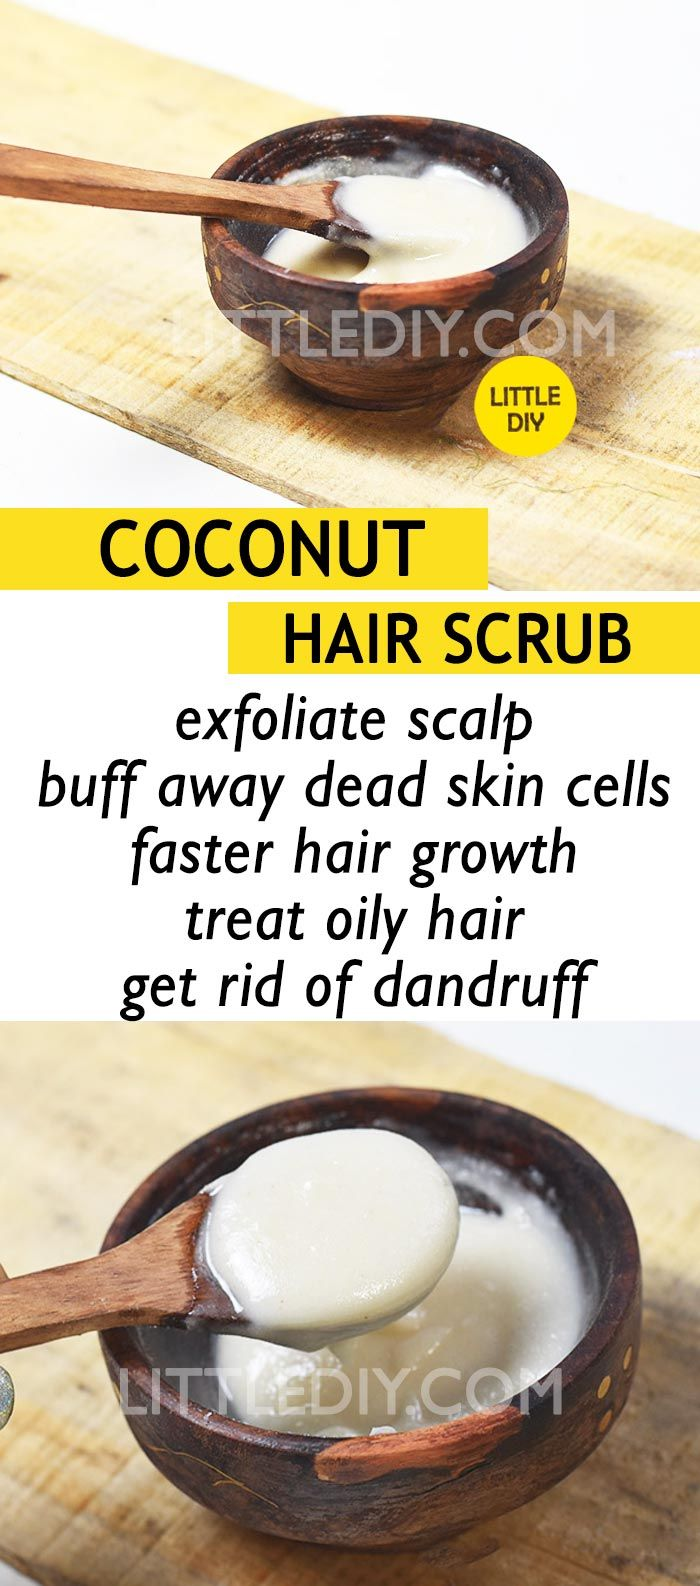 COCONUT SCALP SCRUB TO PROMOTE HAIR GROWTH